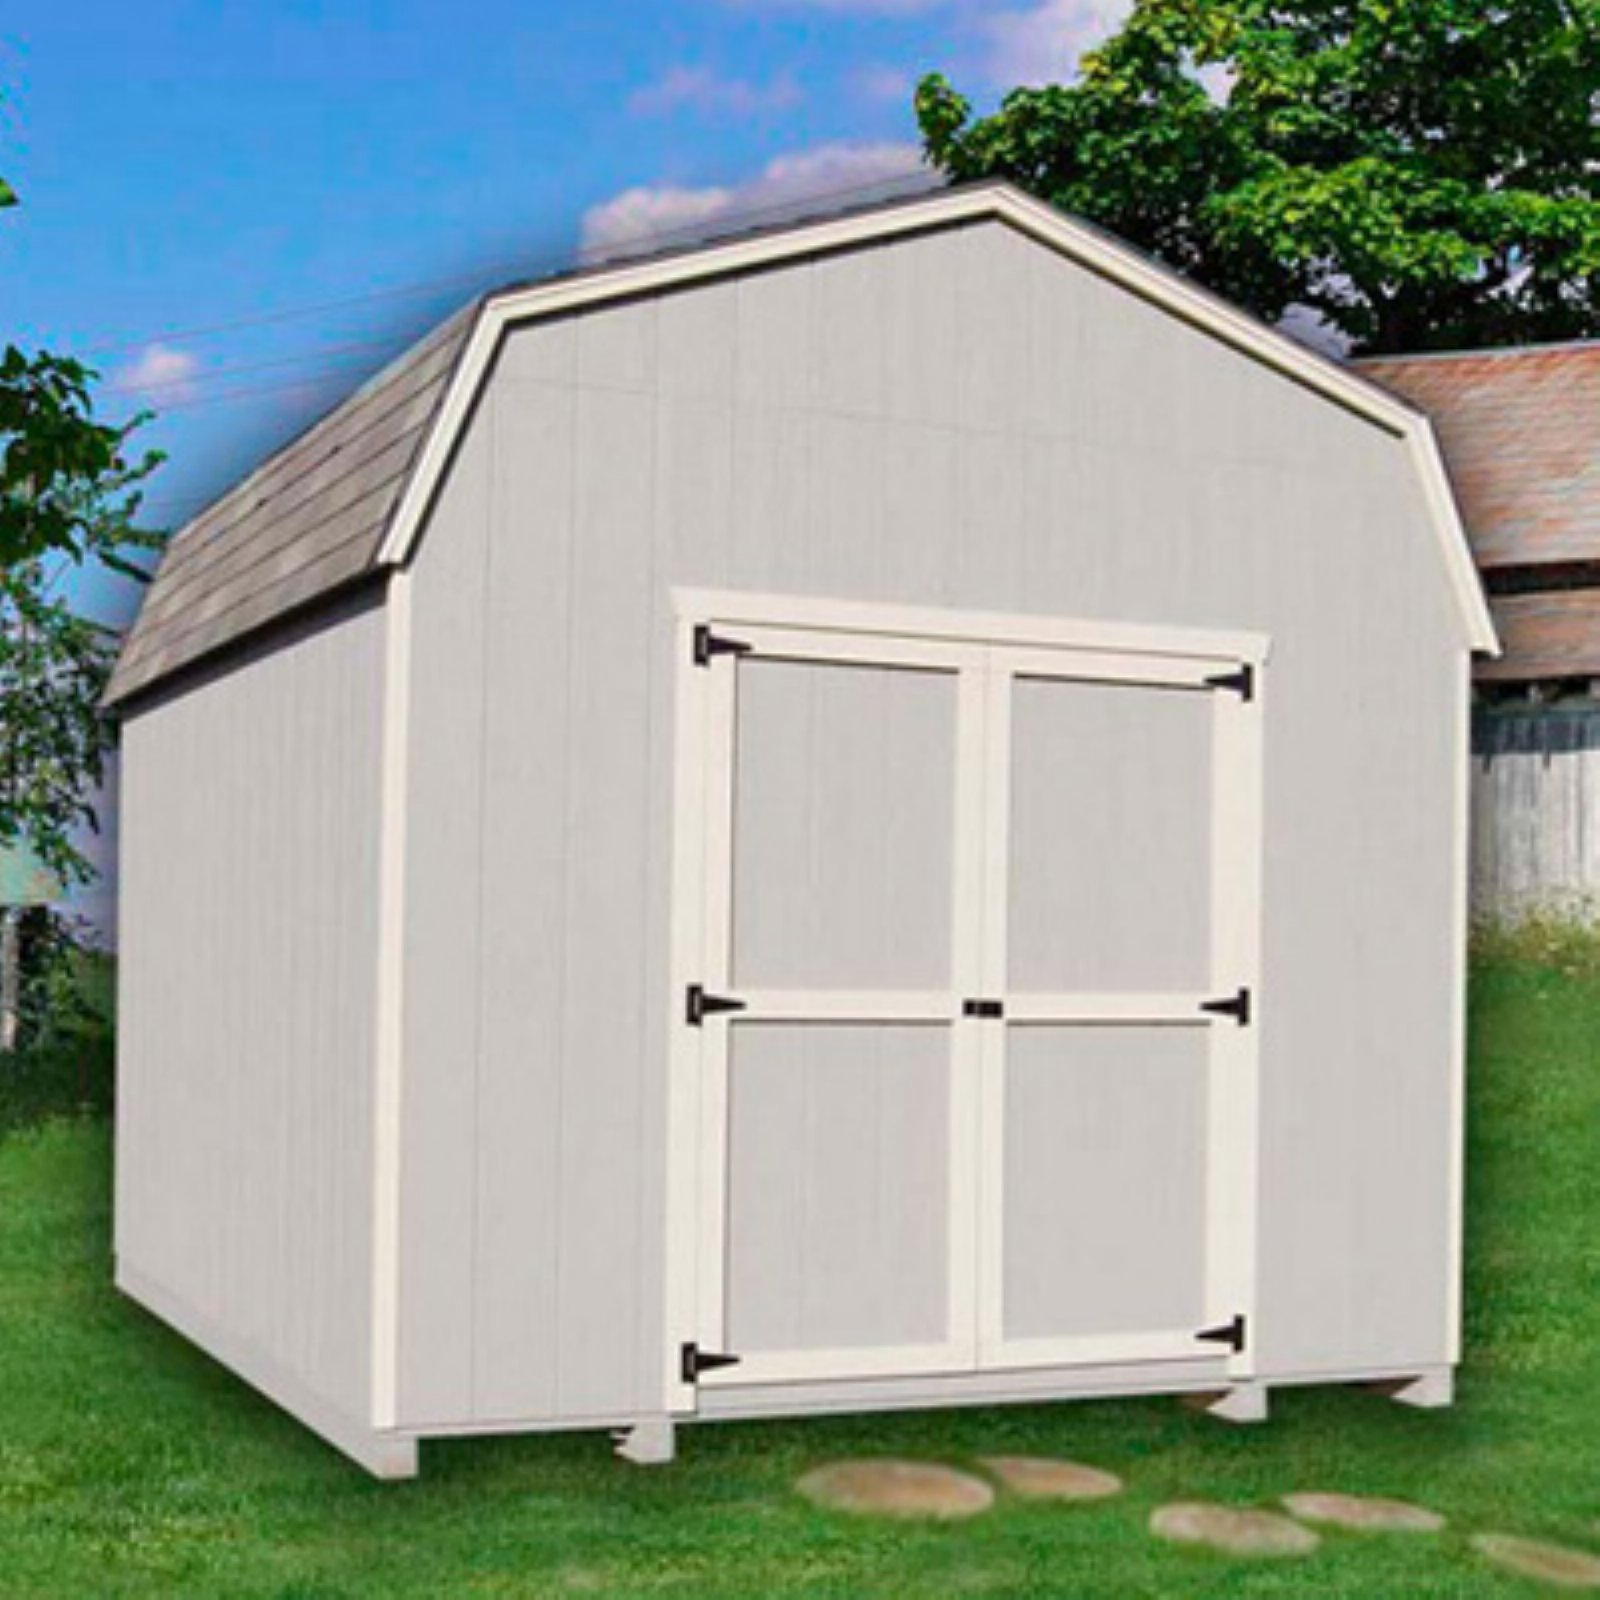 Little Cottage 10 x 12 ft. Value Gambrel Barn Precut Storage Shed - 6 ft. Barn